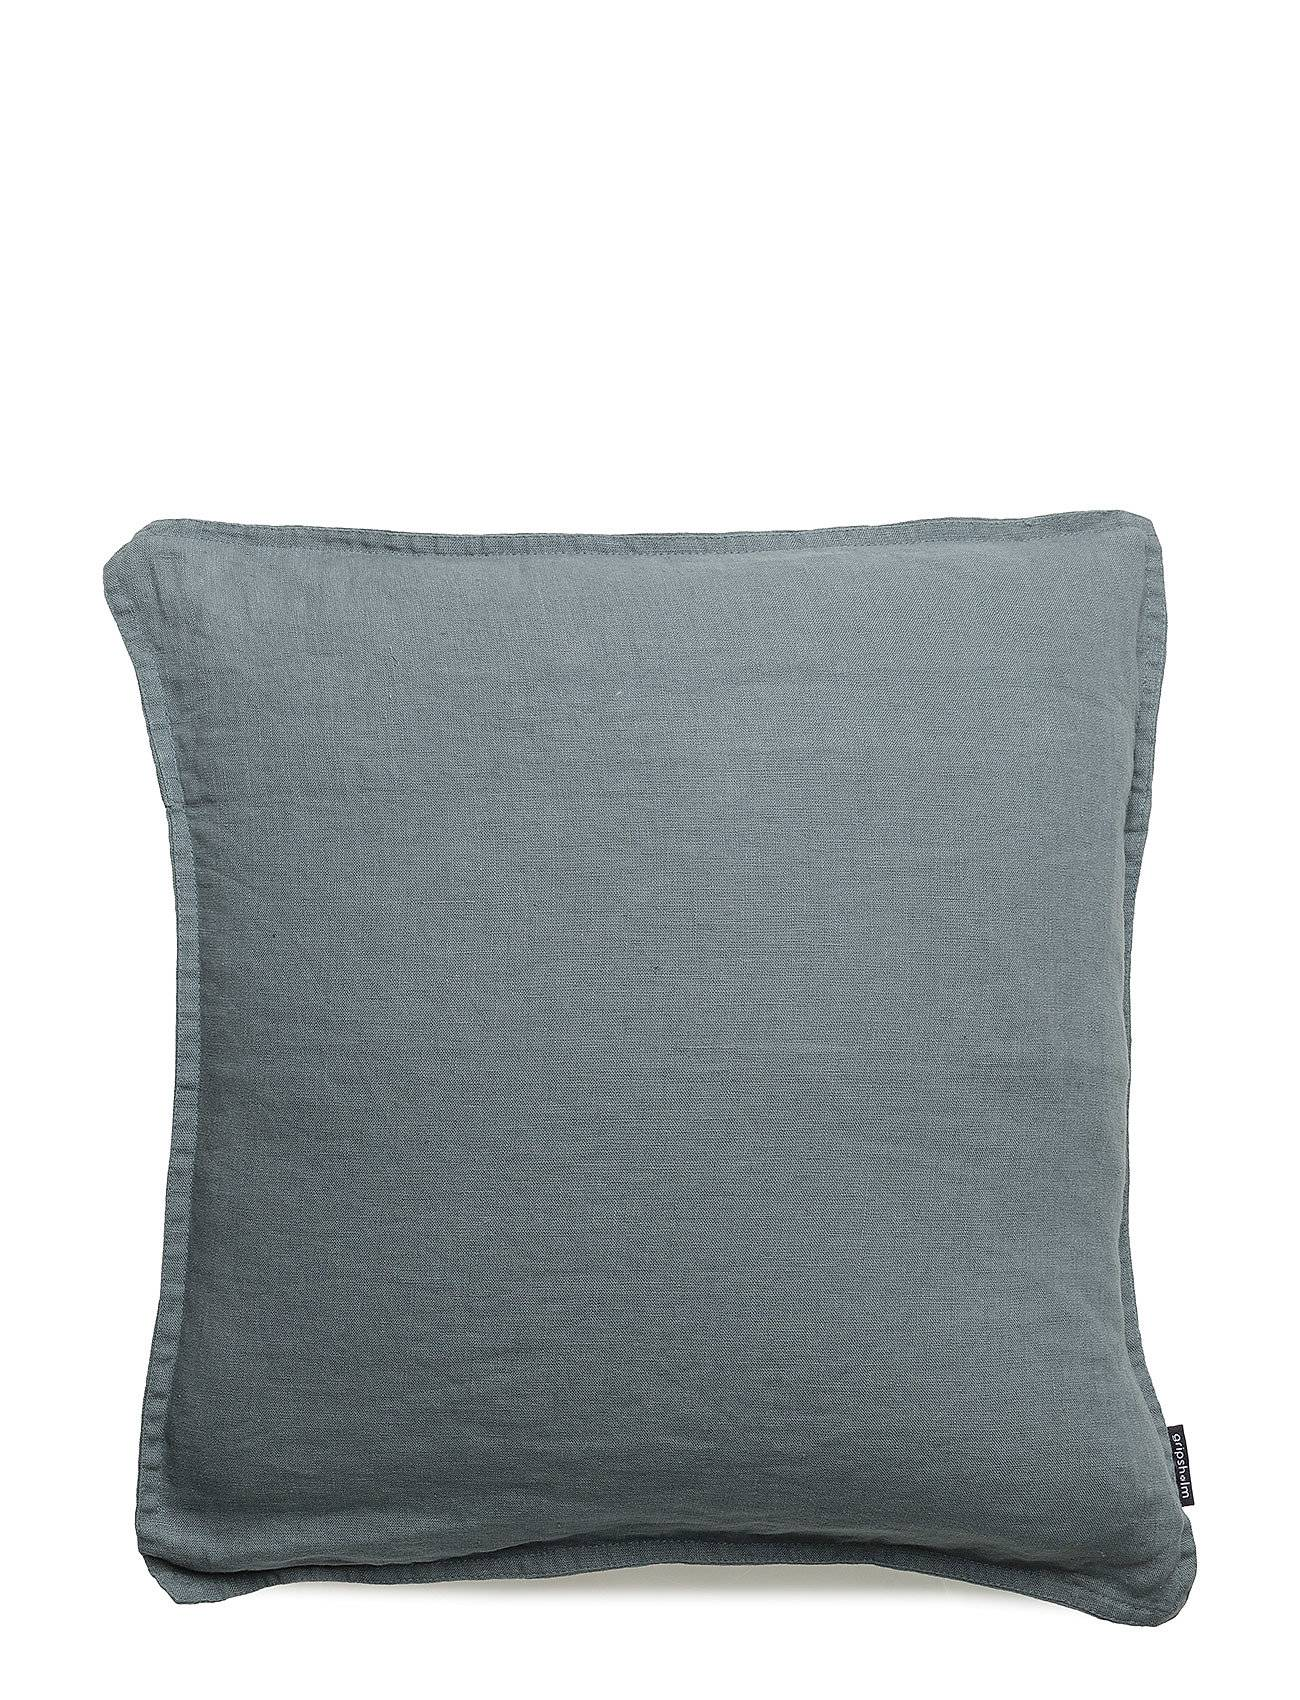 Gripsholm Cushion Cover Washed Linen